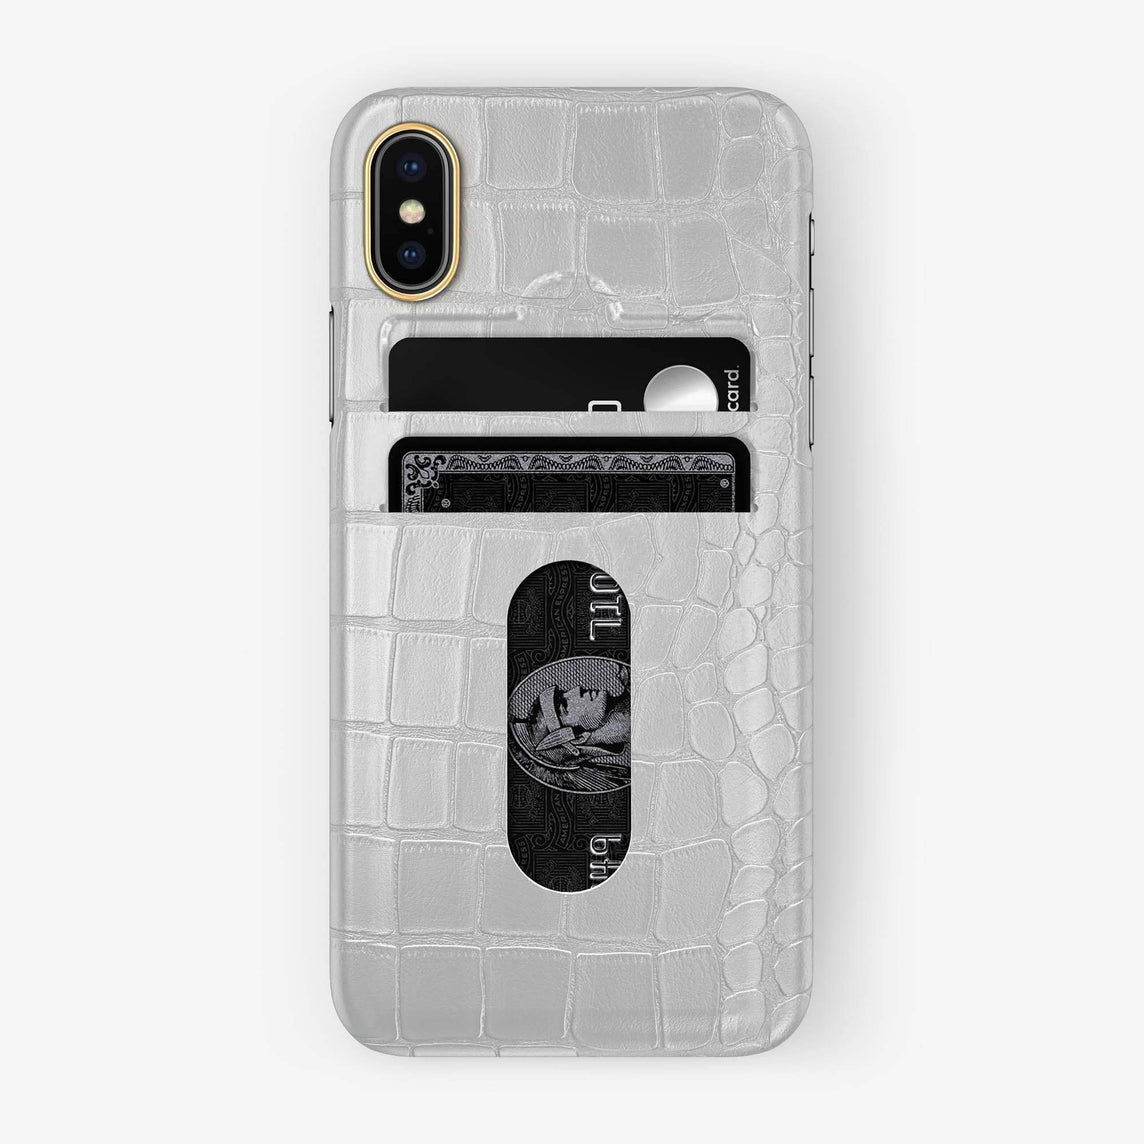 Alligator Card Holder Case iPhone Xs Max | White - Yellow Gold - Hadoro